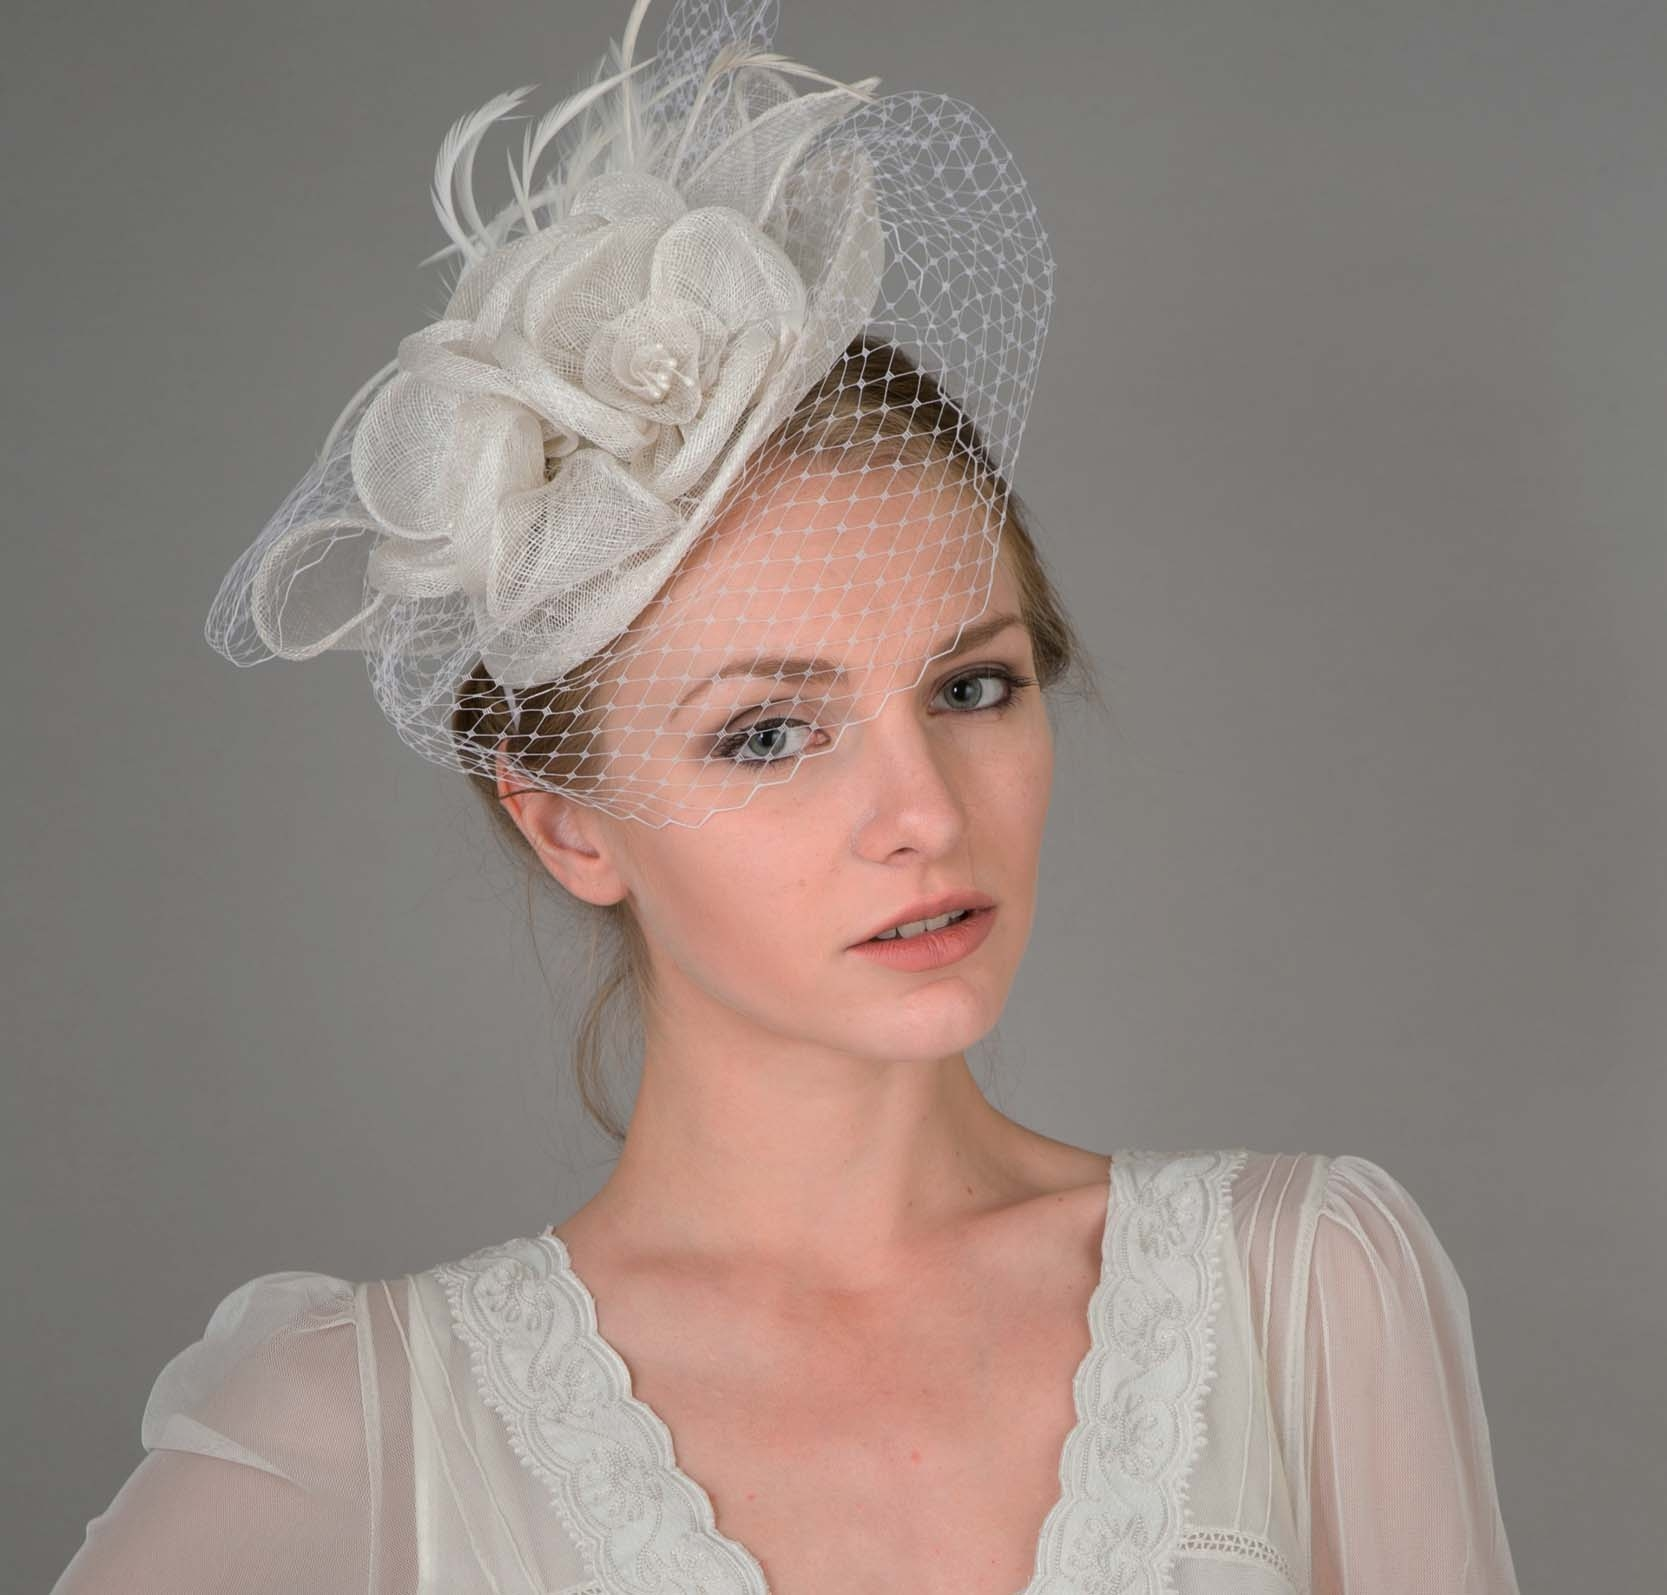 Peach Floral Sinamay Fascinator Headband in White - SOLD OUT c7064fb5963